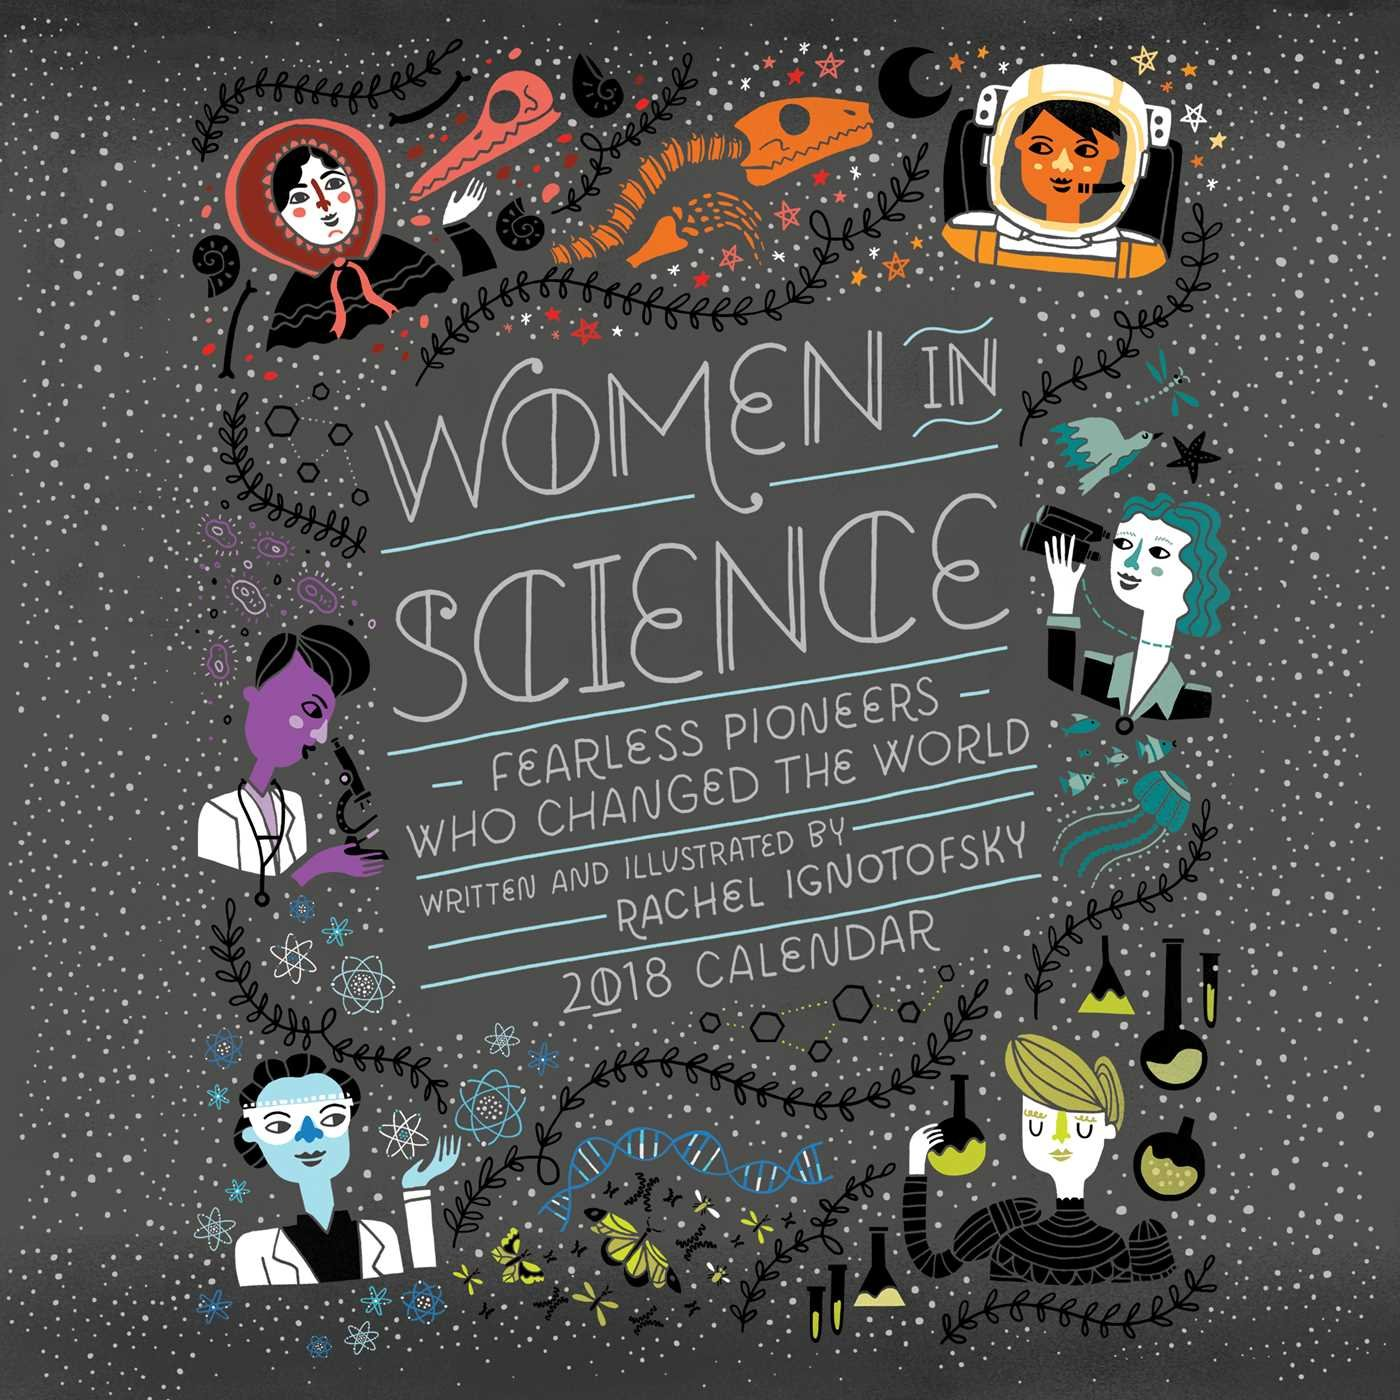 women in science 2018 wall calendar fearless pioneers who changed the world